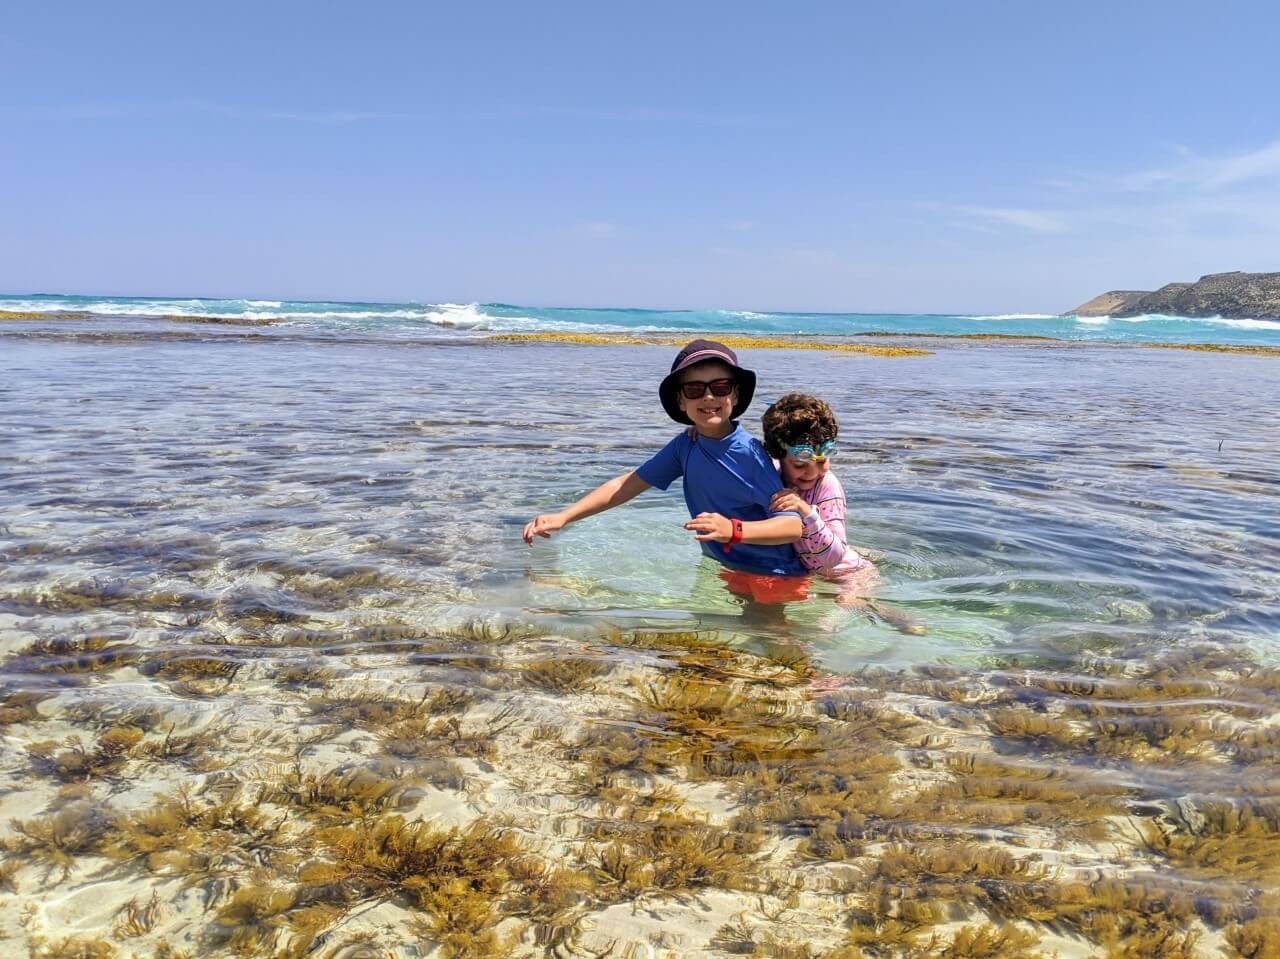 Pennington Bay, Kangaroo Island. Best places to visit on Kangaroo Island with kids